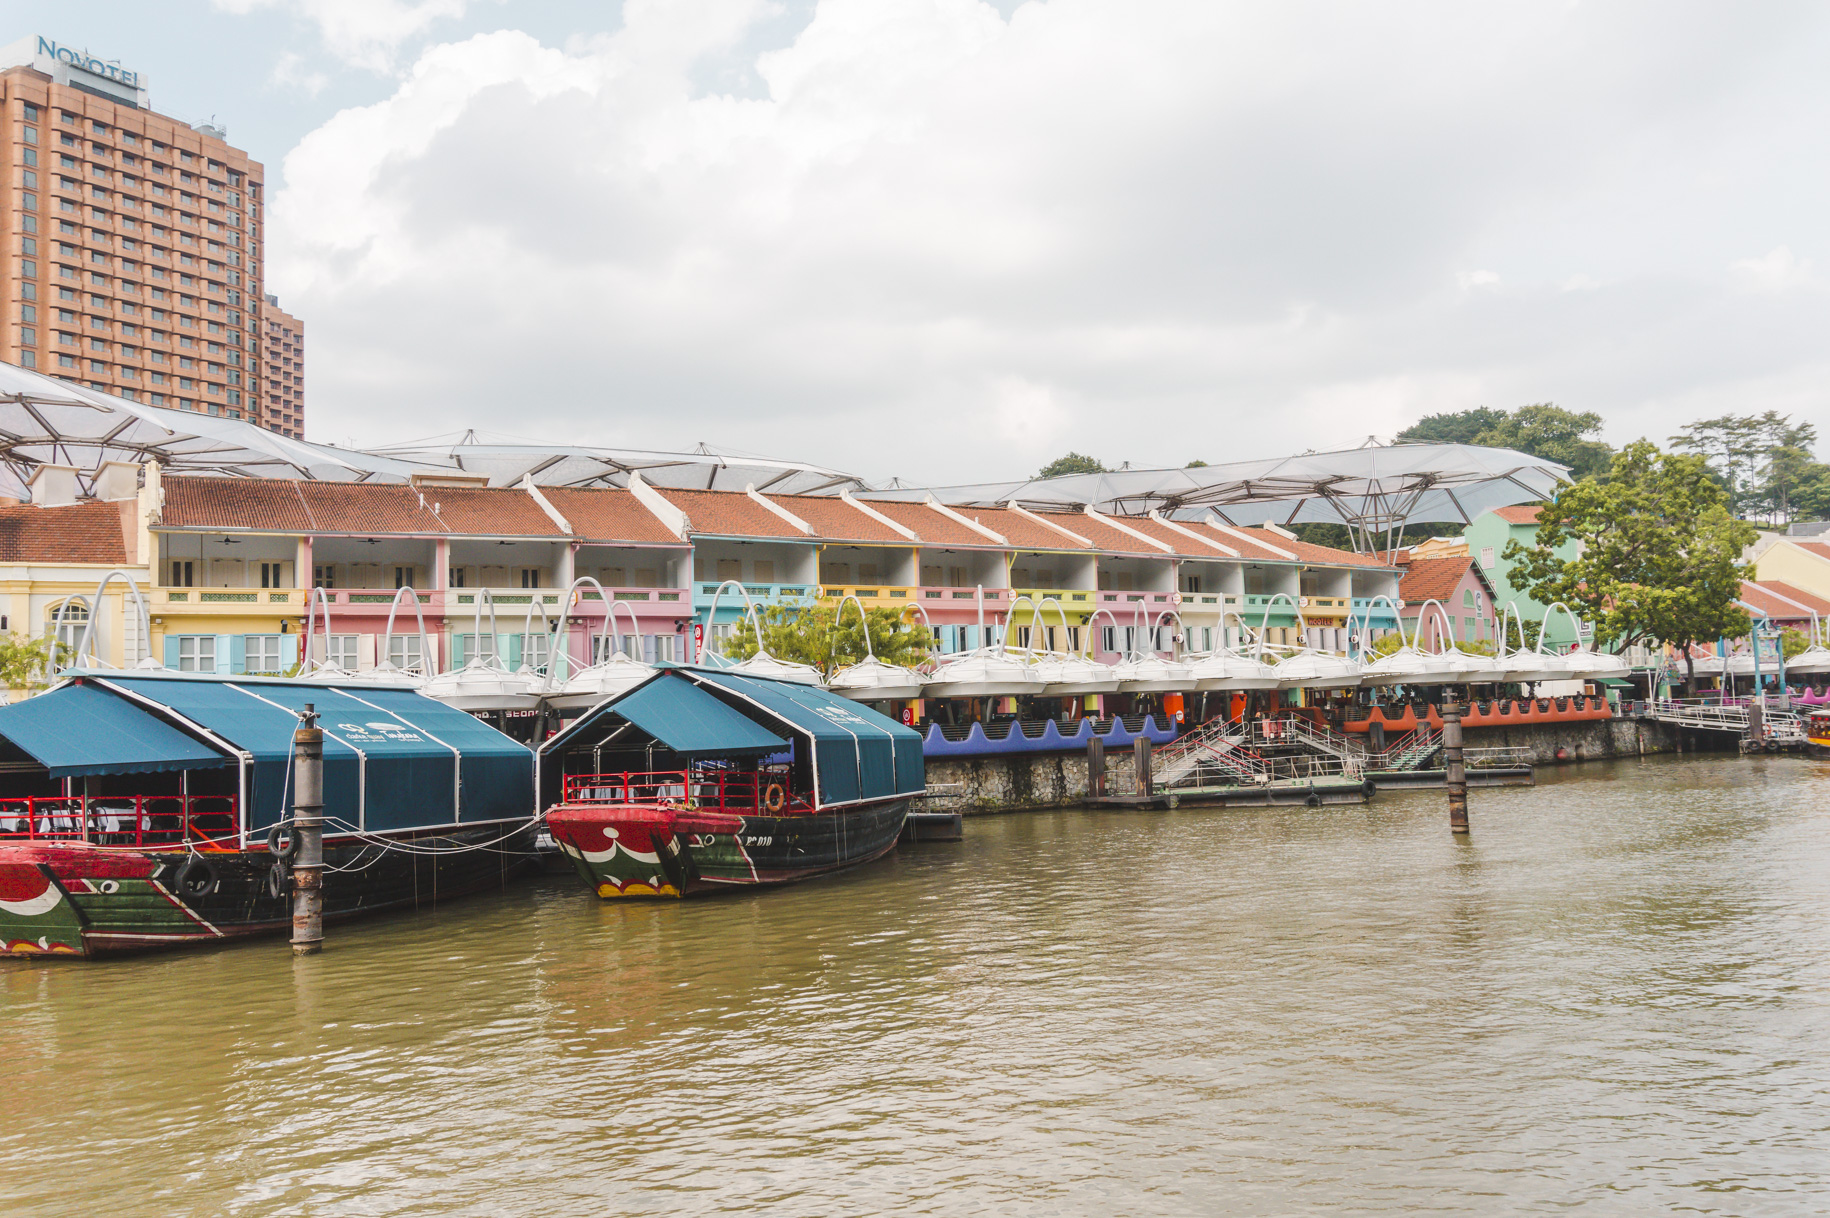 The pastel-coloured buildings of Clarke Quay, on the river in Singapore.